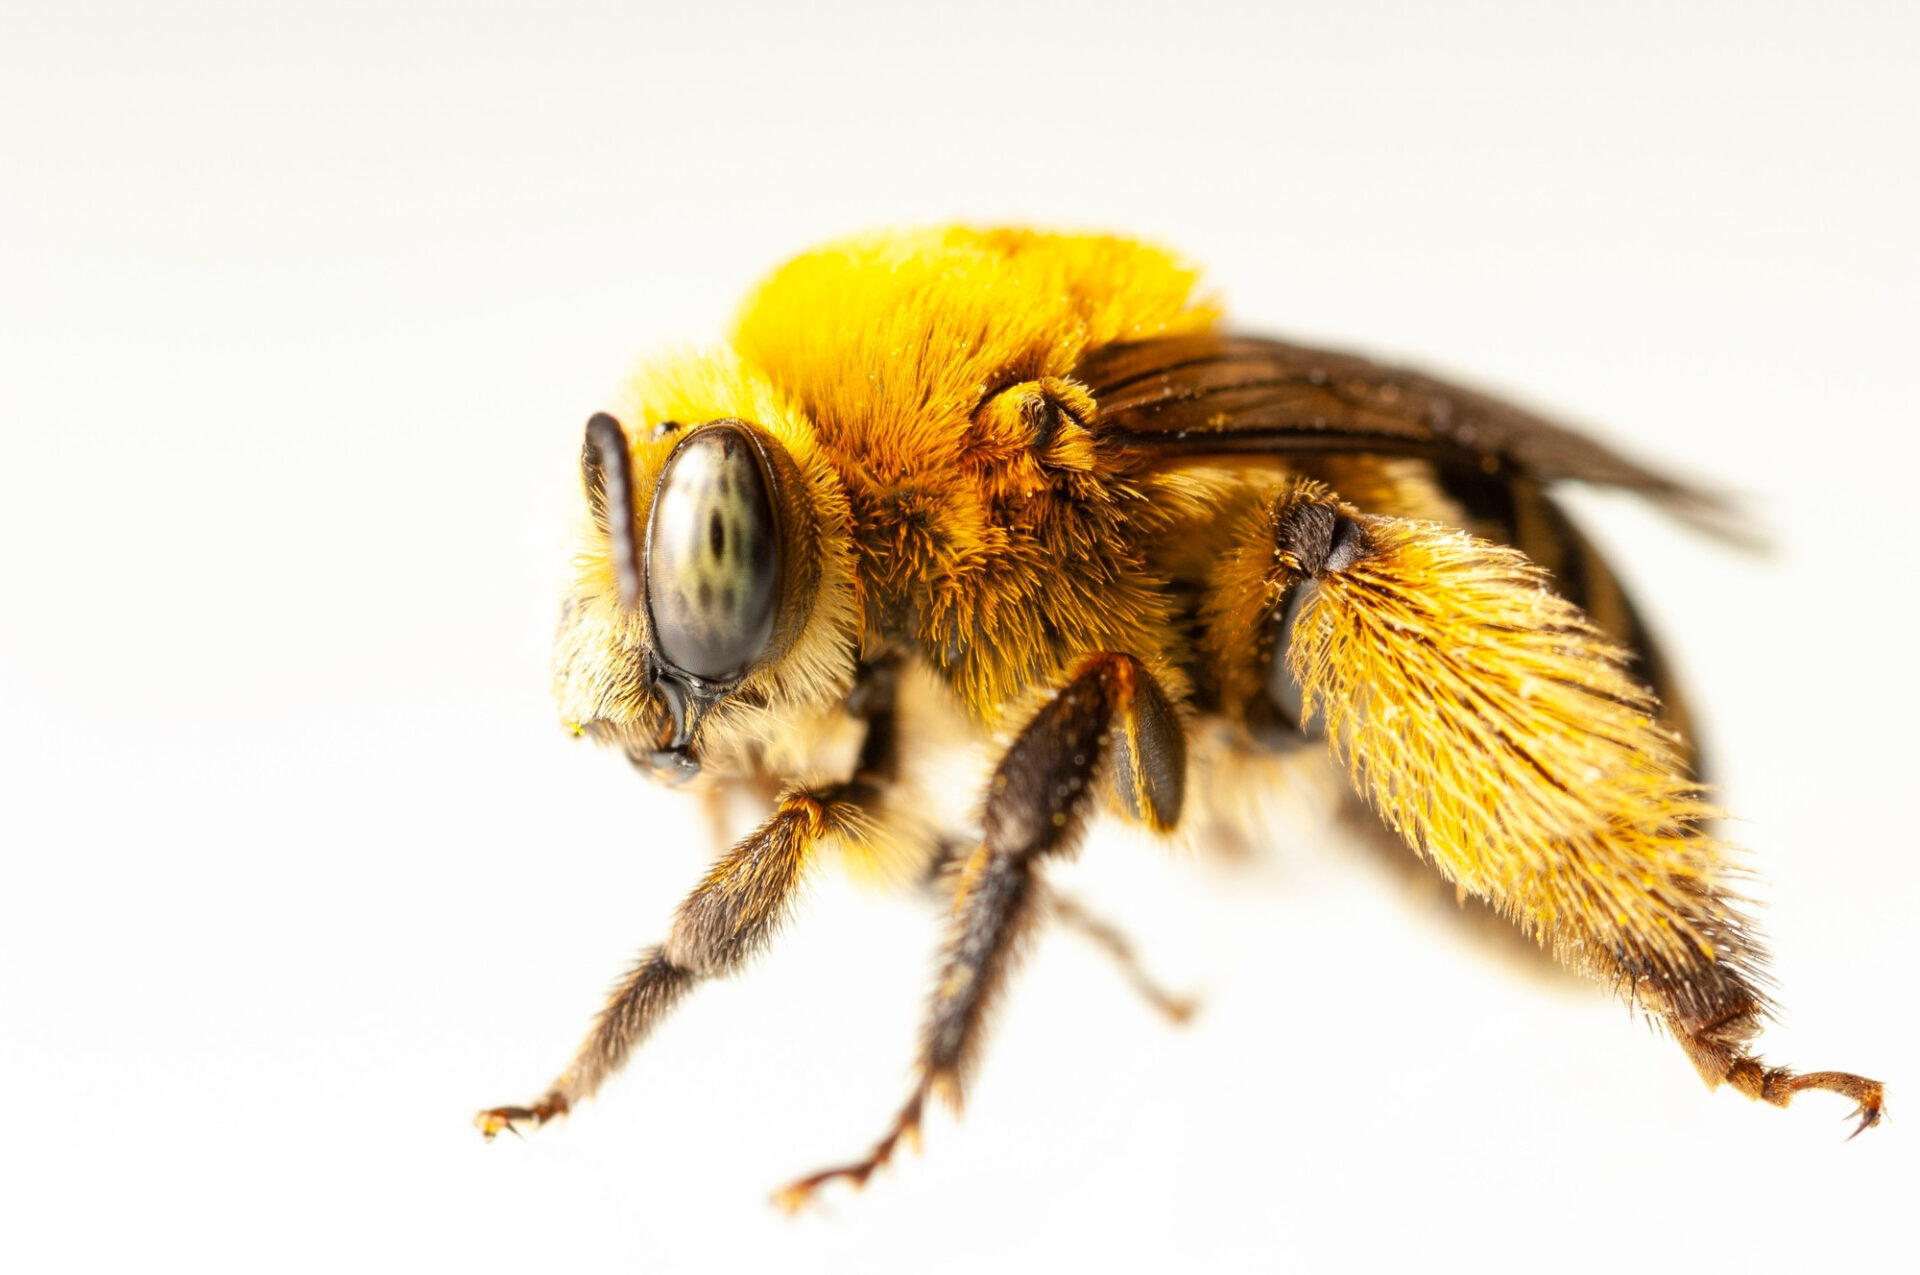 Photo: A long-horned bee photographed at a studio in Lincoln, NE.